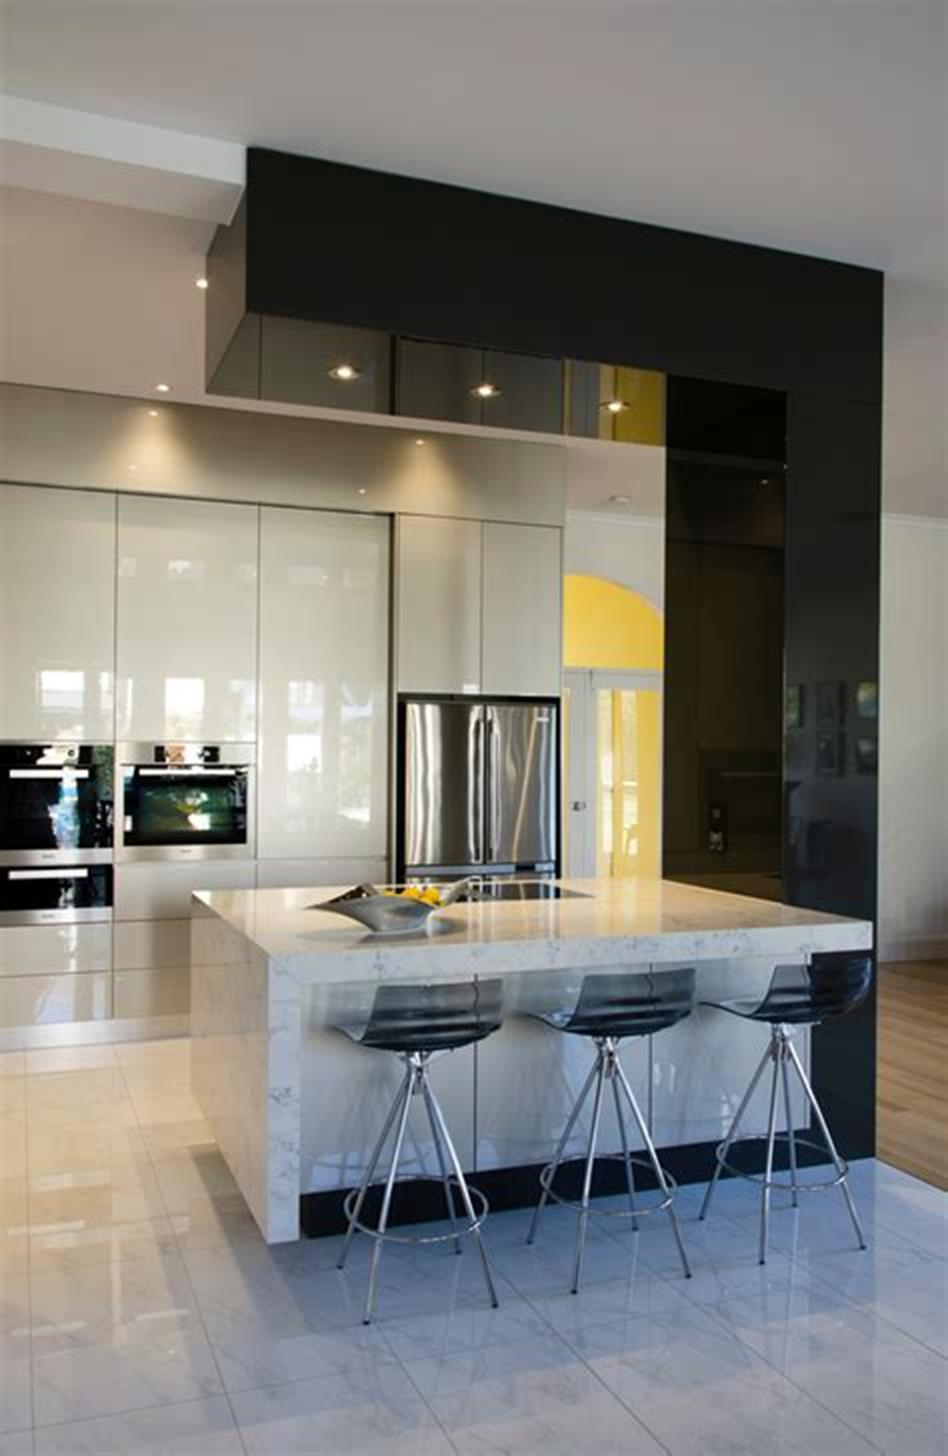 35 Stunning Contemporary Kitchen Design Ideas Youll Love 7